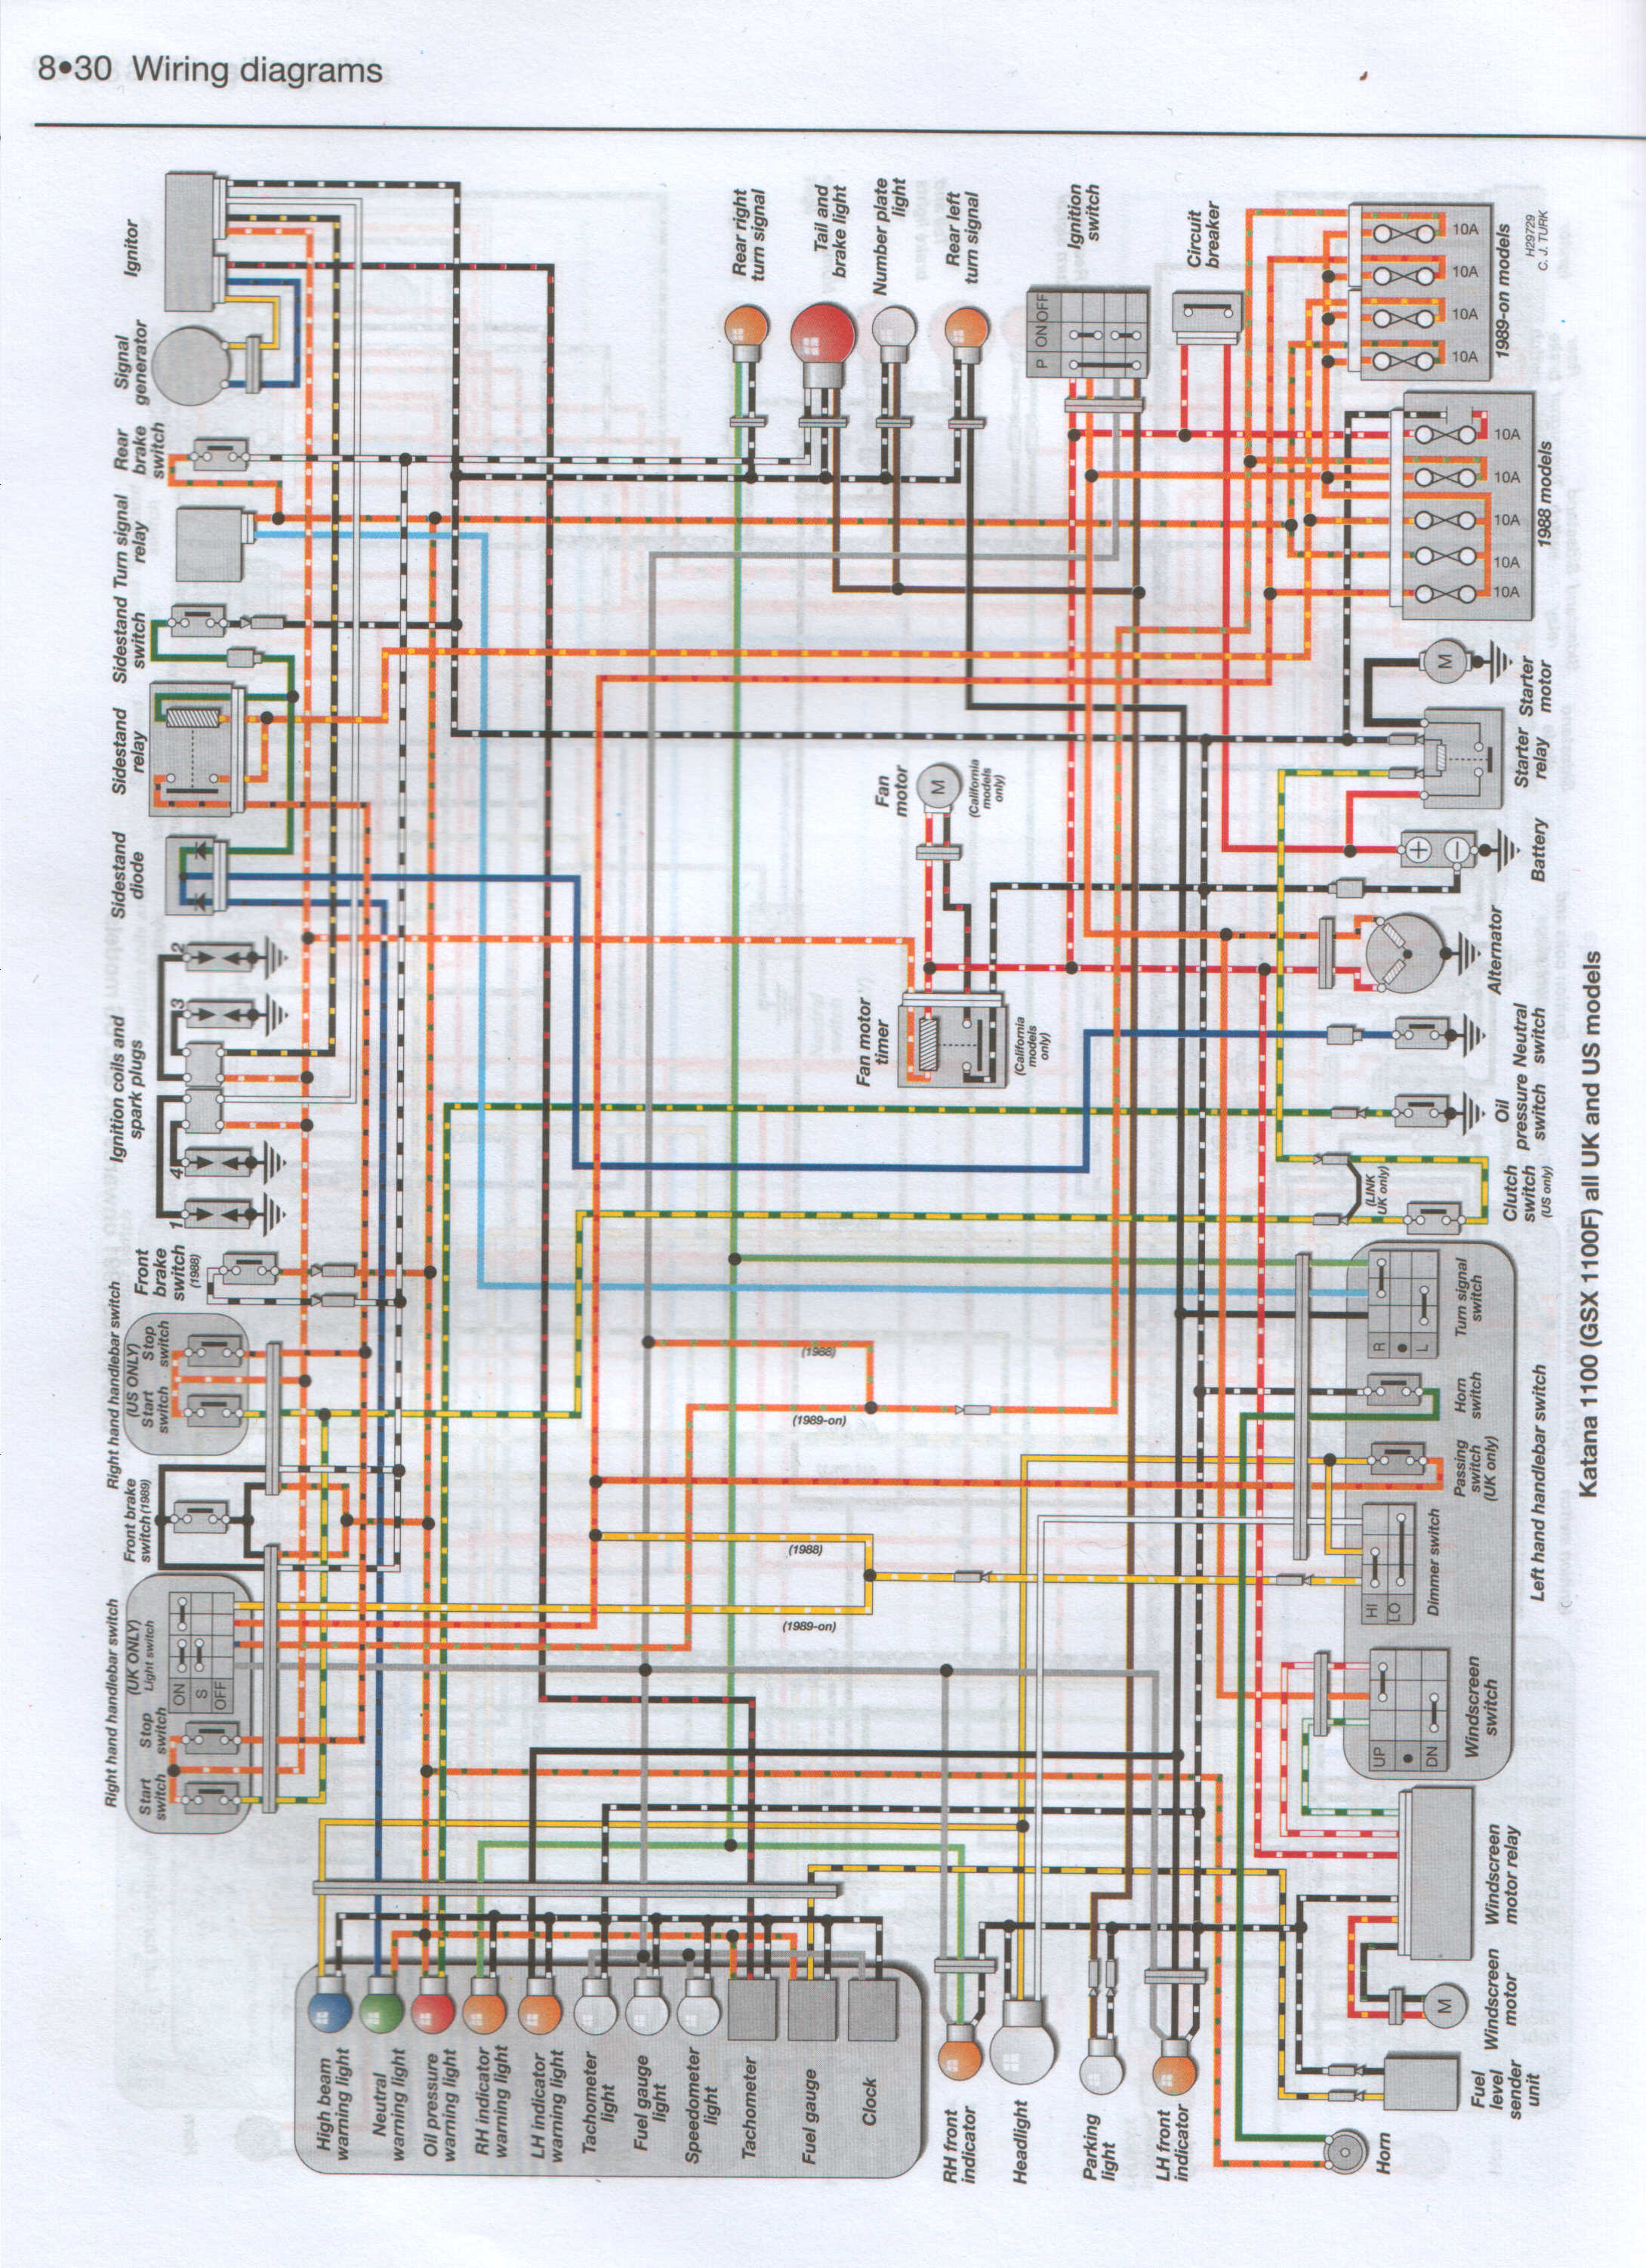 Suzuki_GSX1100F_Wiring_Diagram  Suzuki Wiring Diagram on gsx1300ra, lt230e,